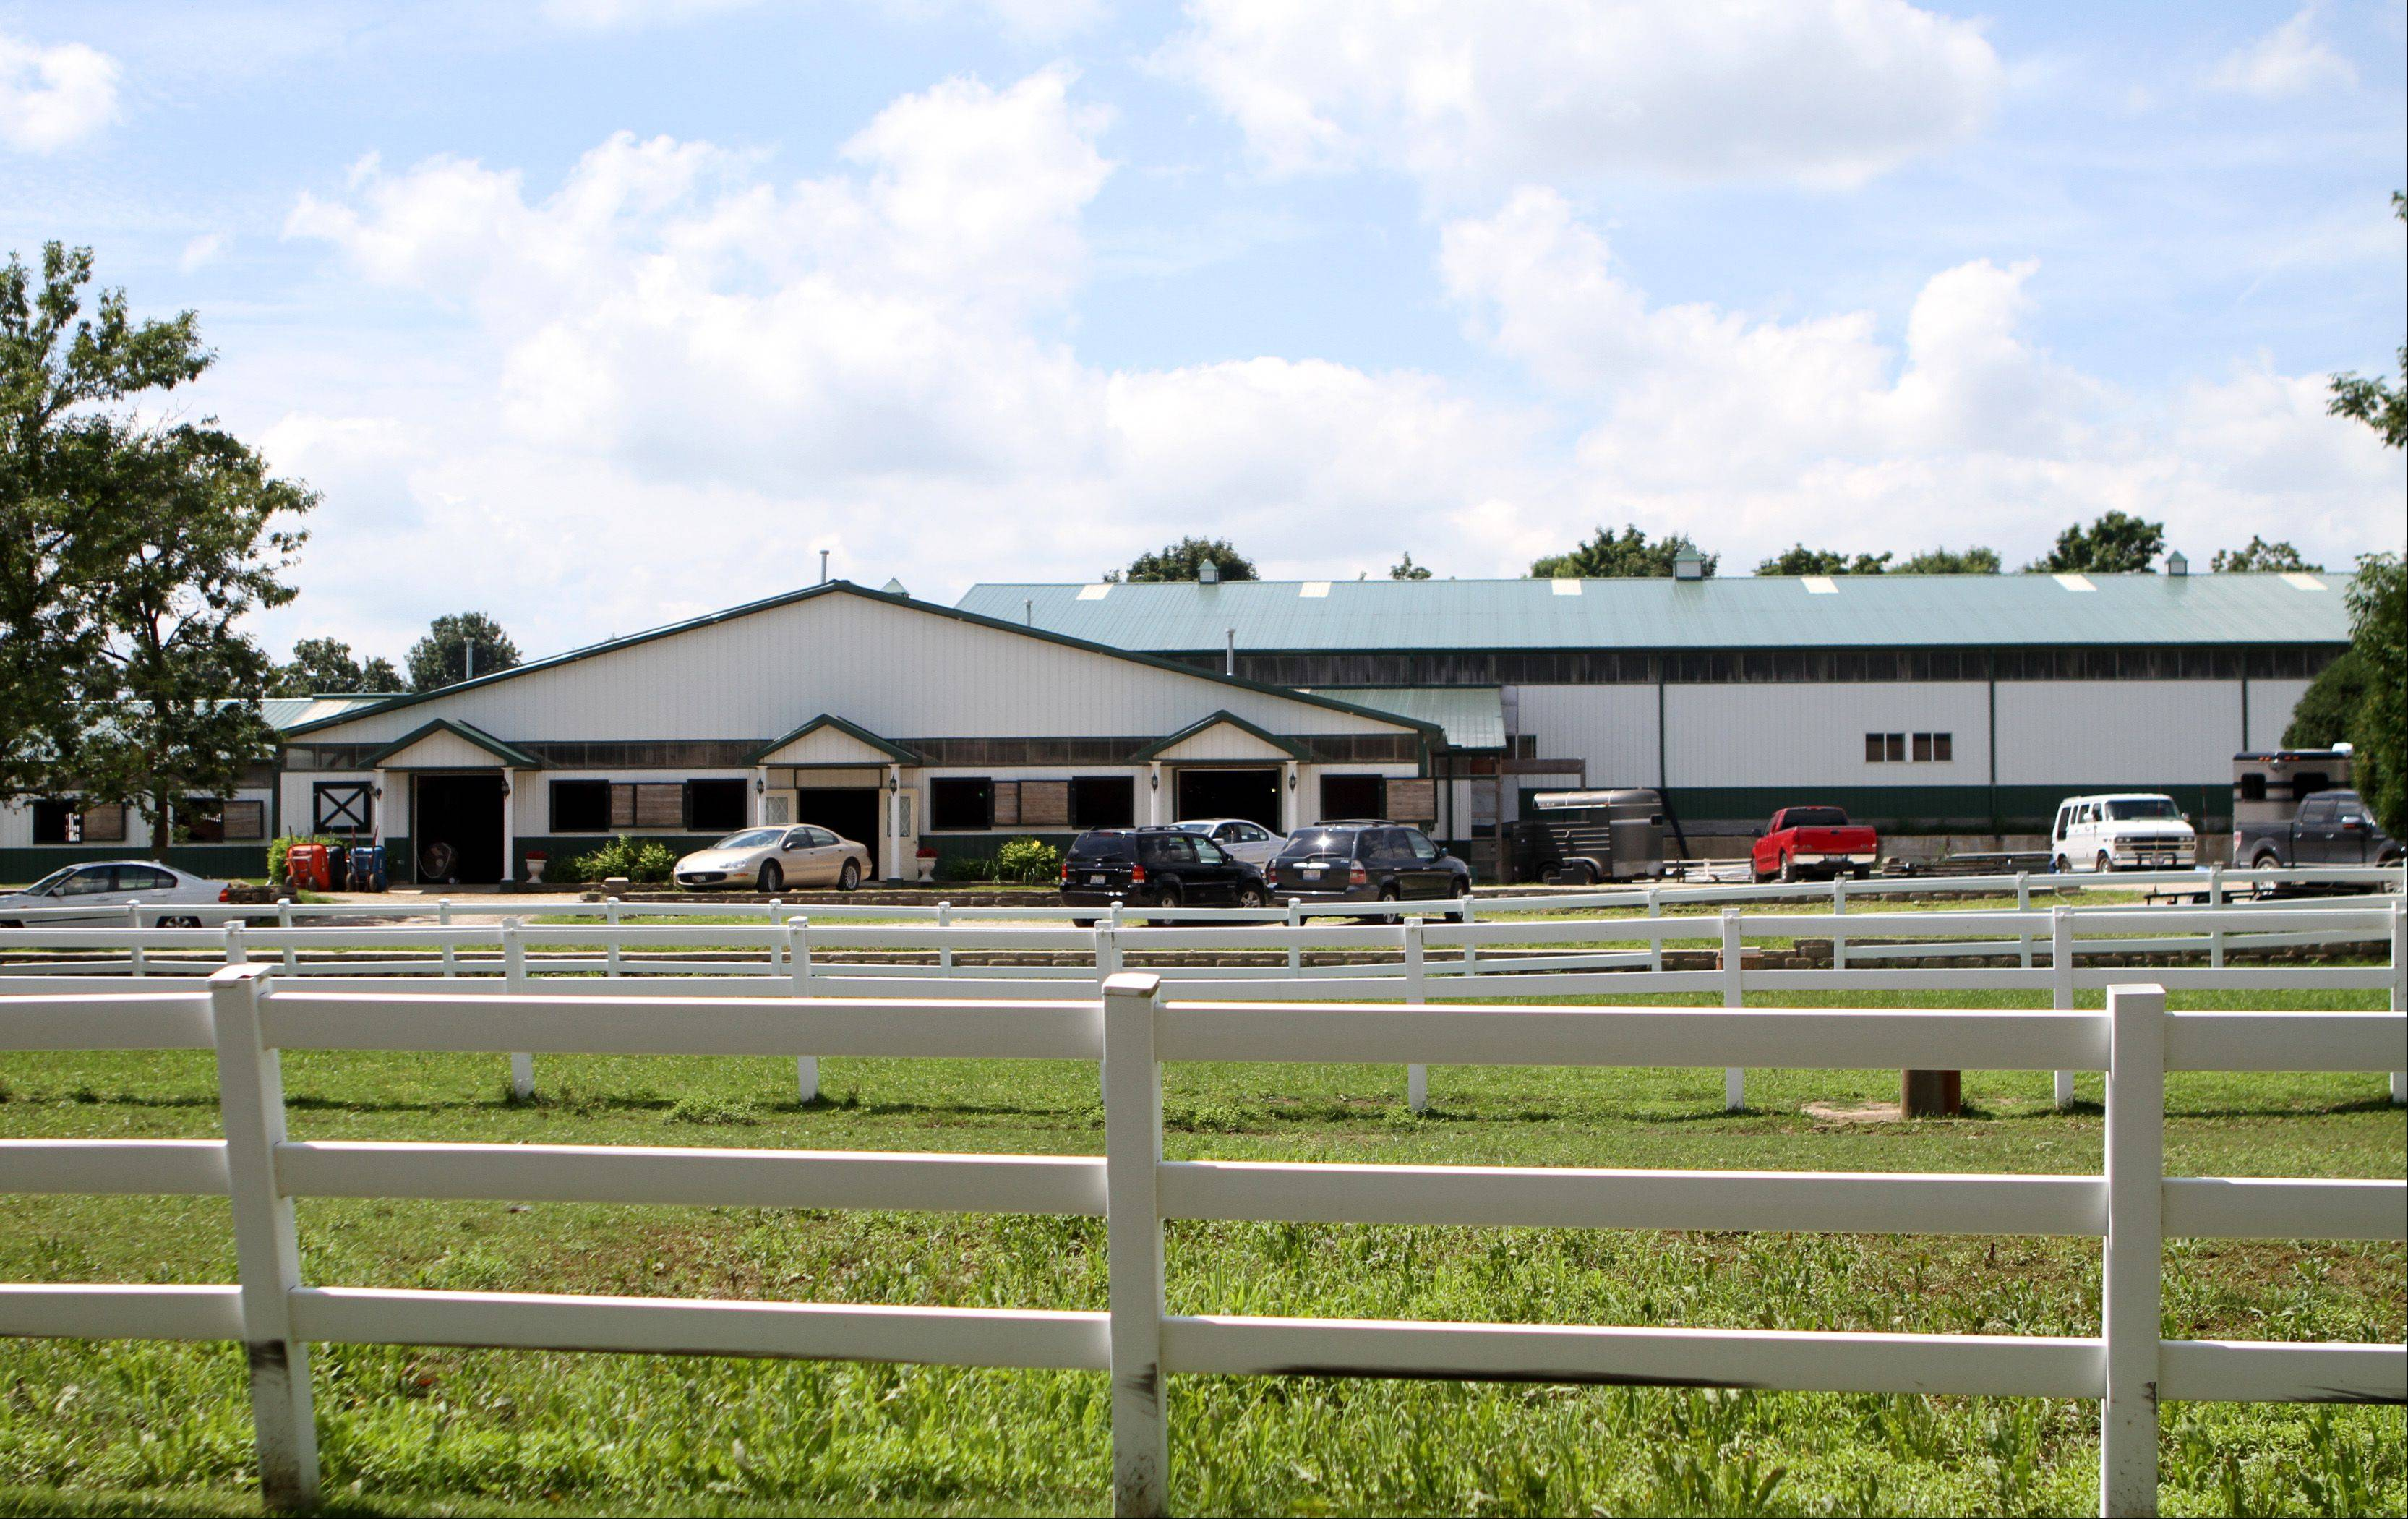 Oakwood Farms in Barrington Hills, which has a barn large enough for 60 horses, has long been a subject of public debate about commercial horse boarding on residential property. But could the topic determine the outcome of the next village board election?